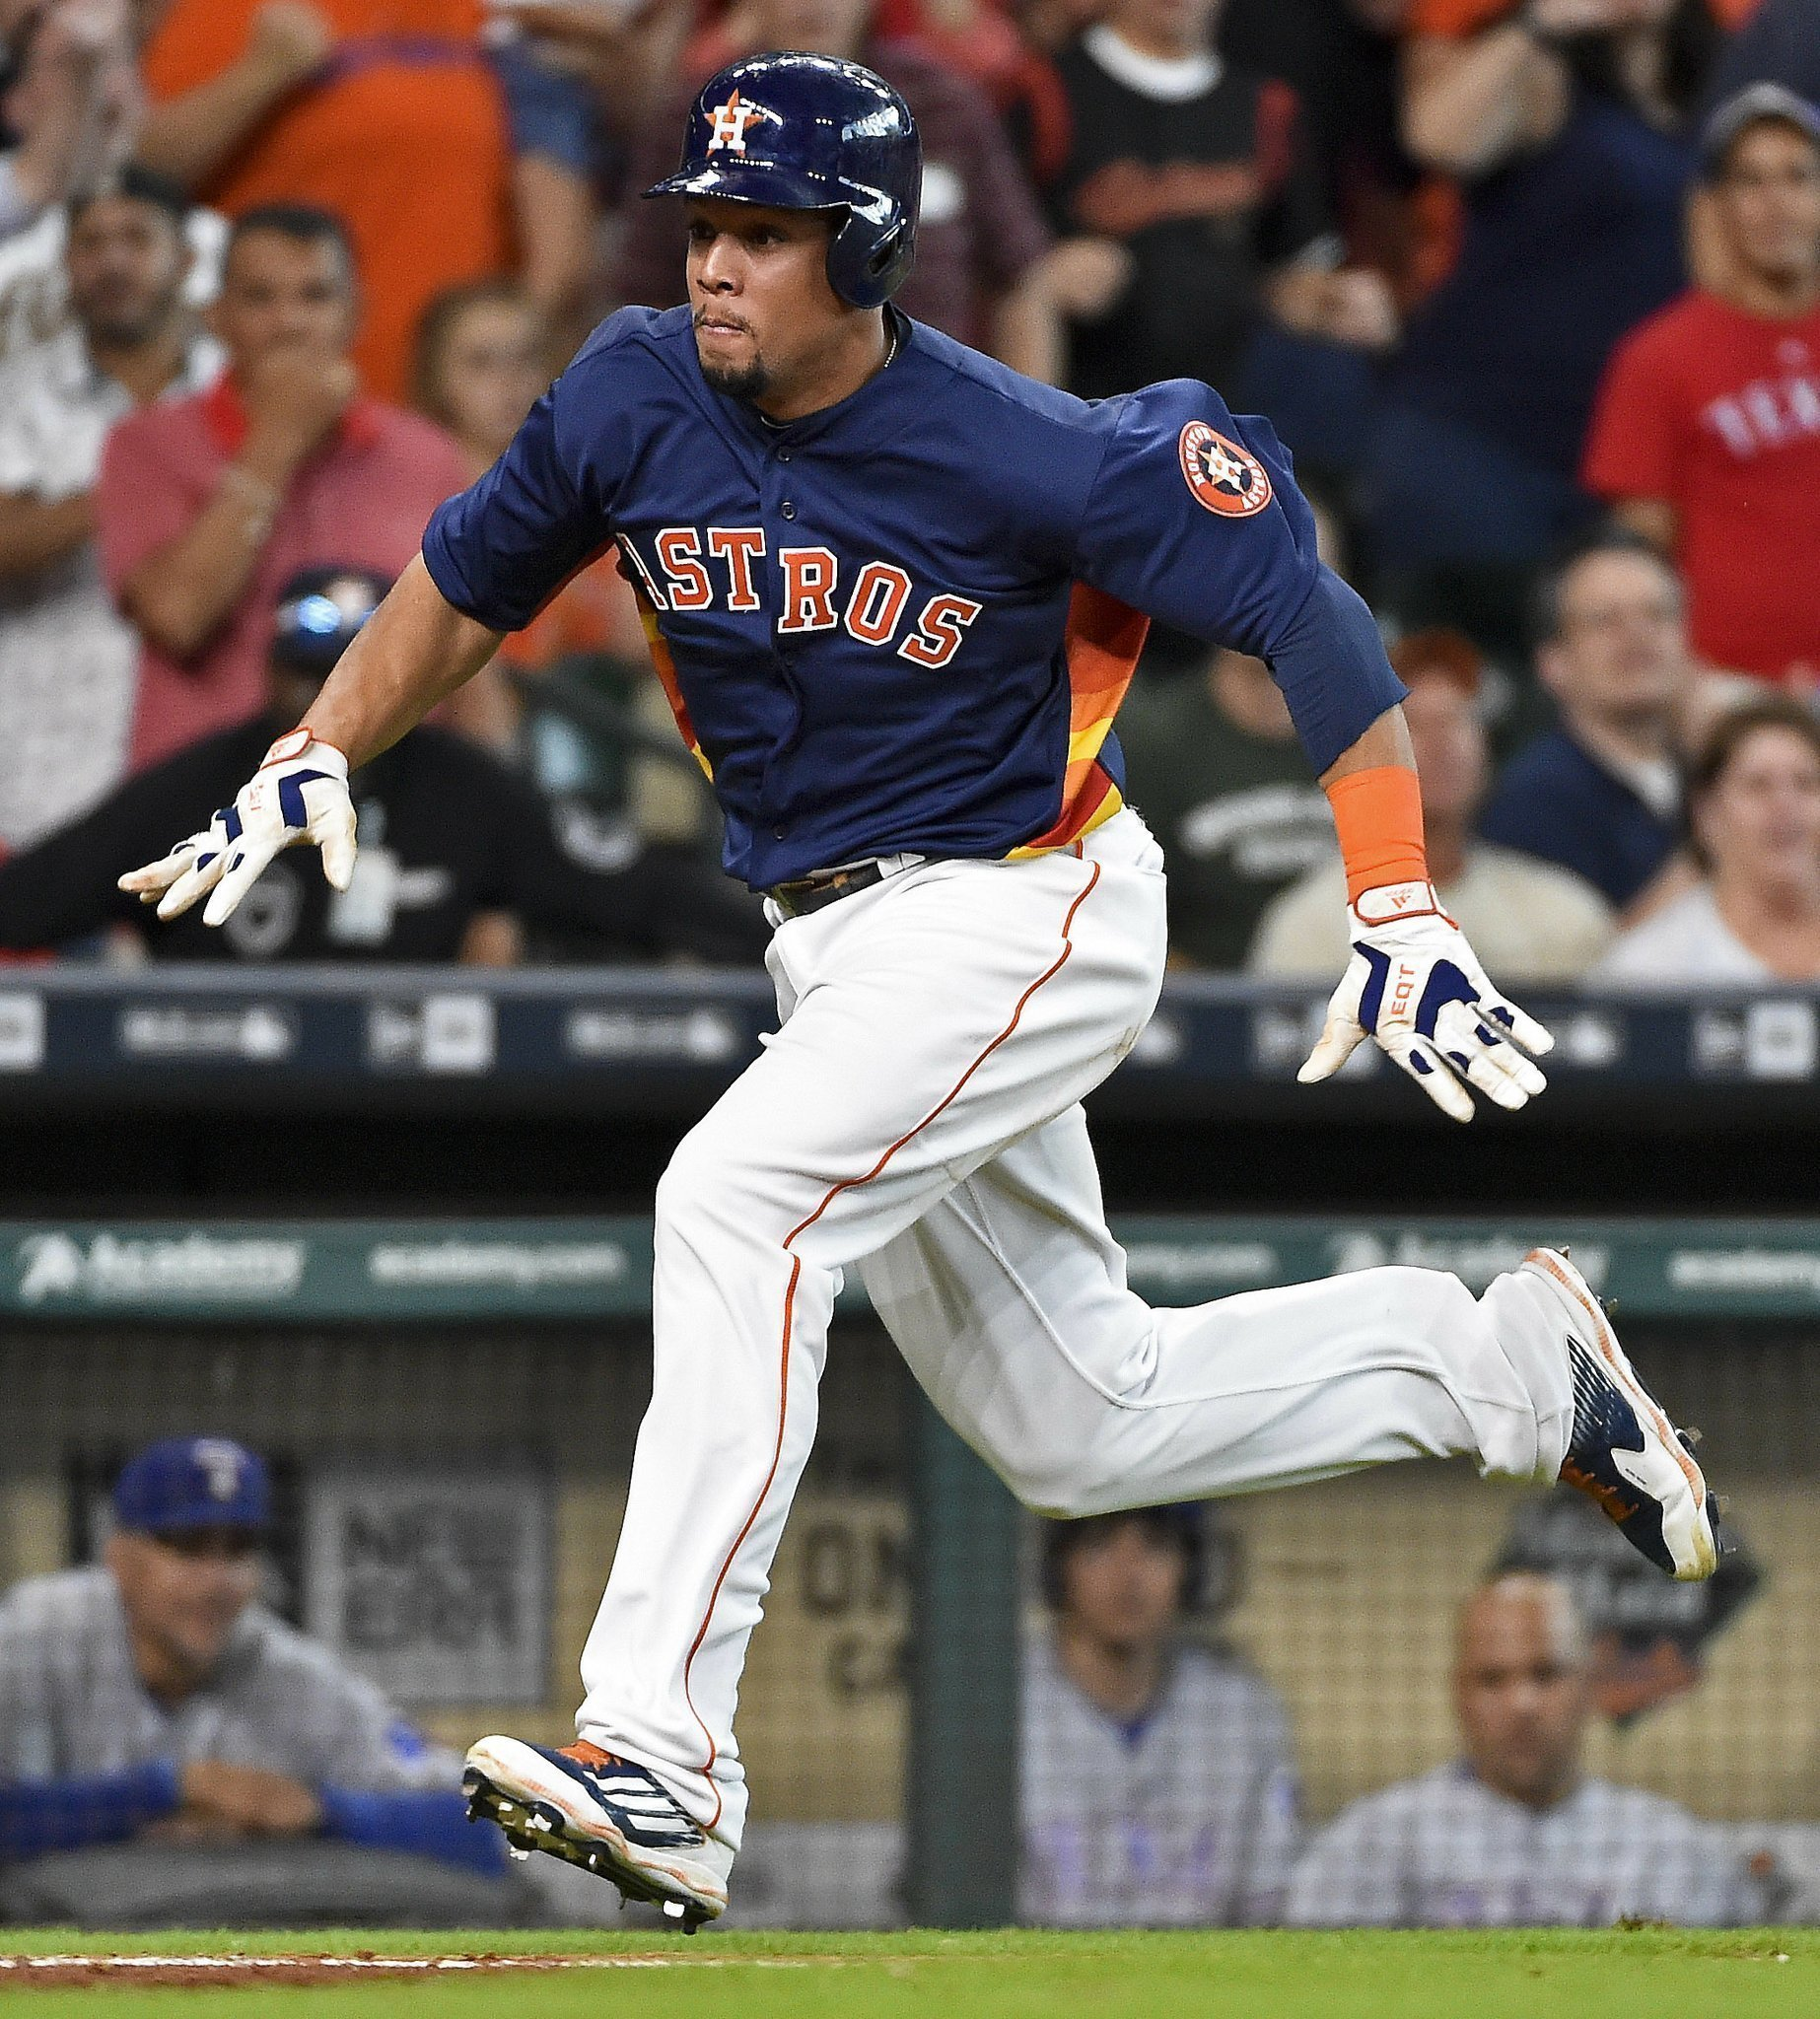 The Tampa Bay Rays have signed Carlos Gomez to a one-year contract worth $4  million, according to a report.